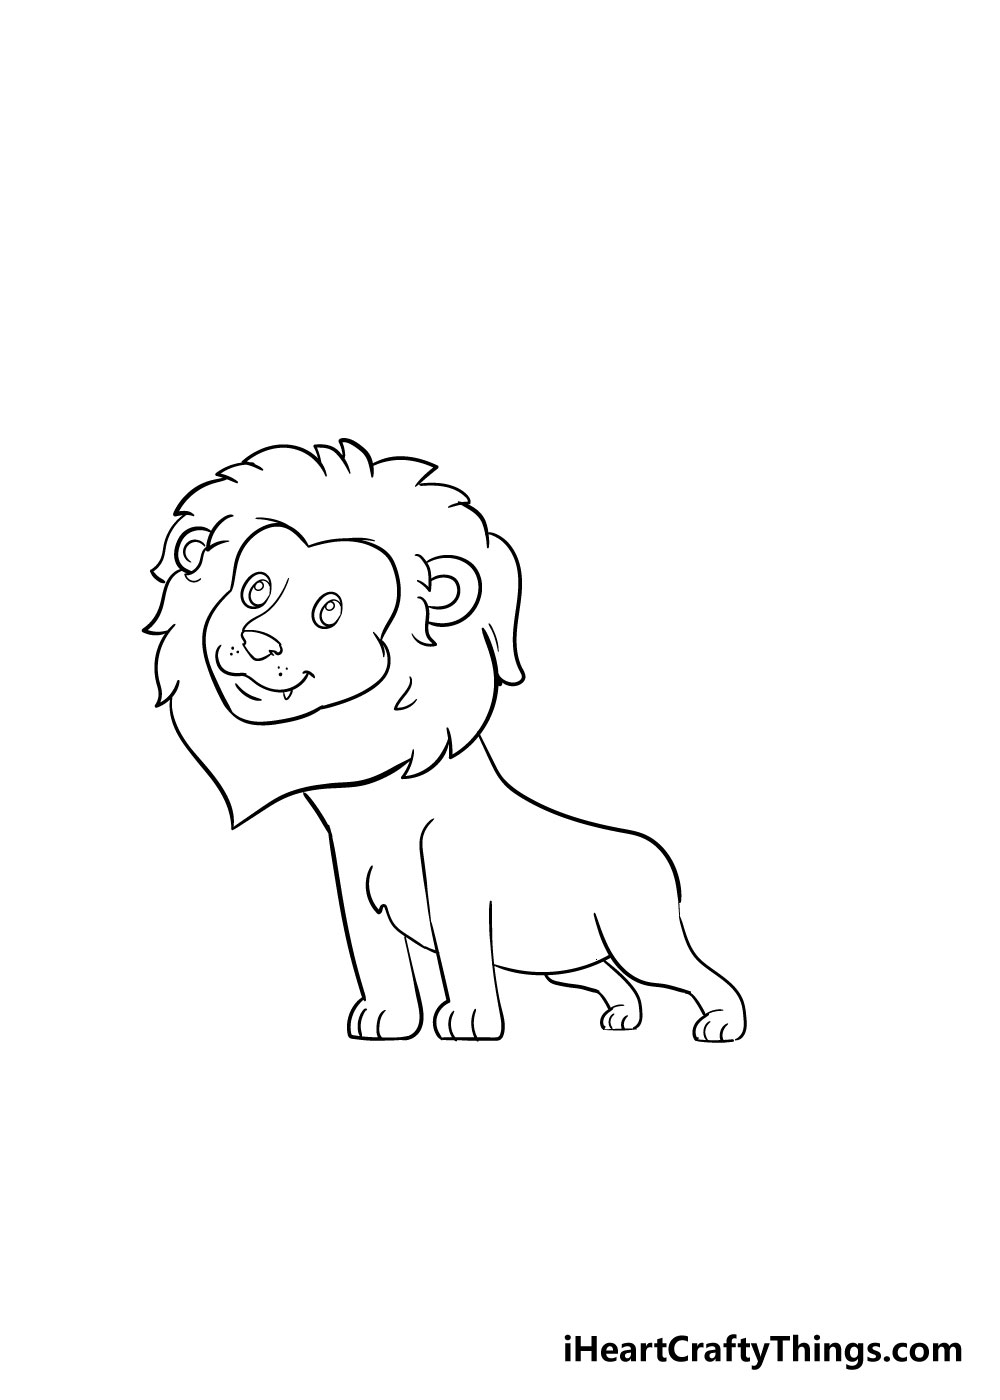 lion drawing step 6